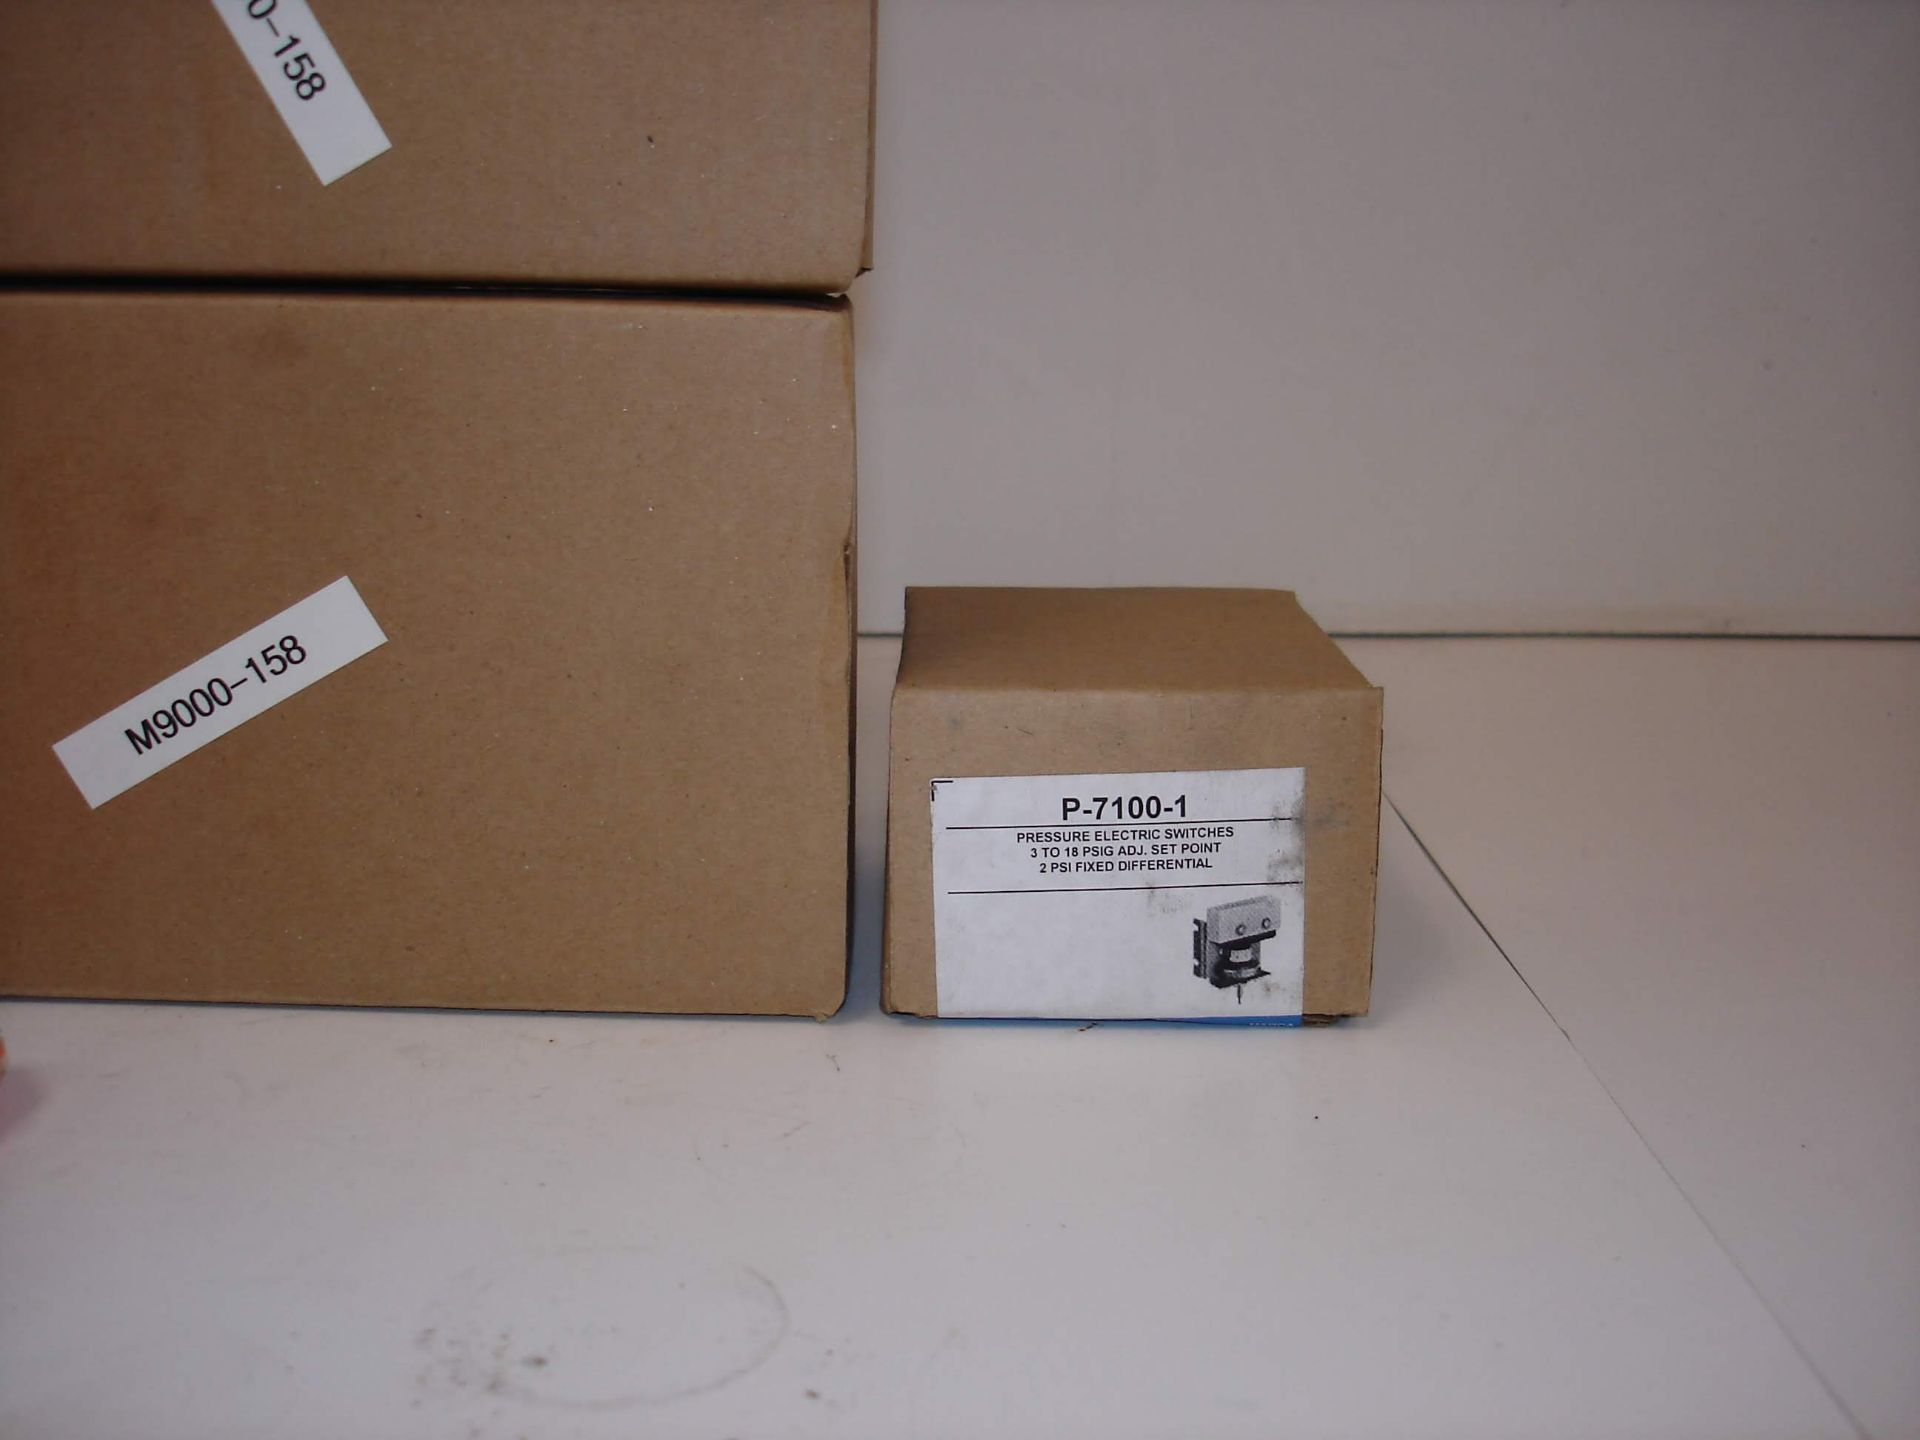 Lot 15B - (5) MISC JOHNSON CONTROLS KITS AND MORE: JOHNSON CONTROLS P-7100-1 AND ALL OTHER ITEMS INCLUDED IN